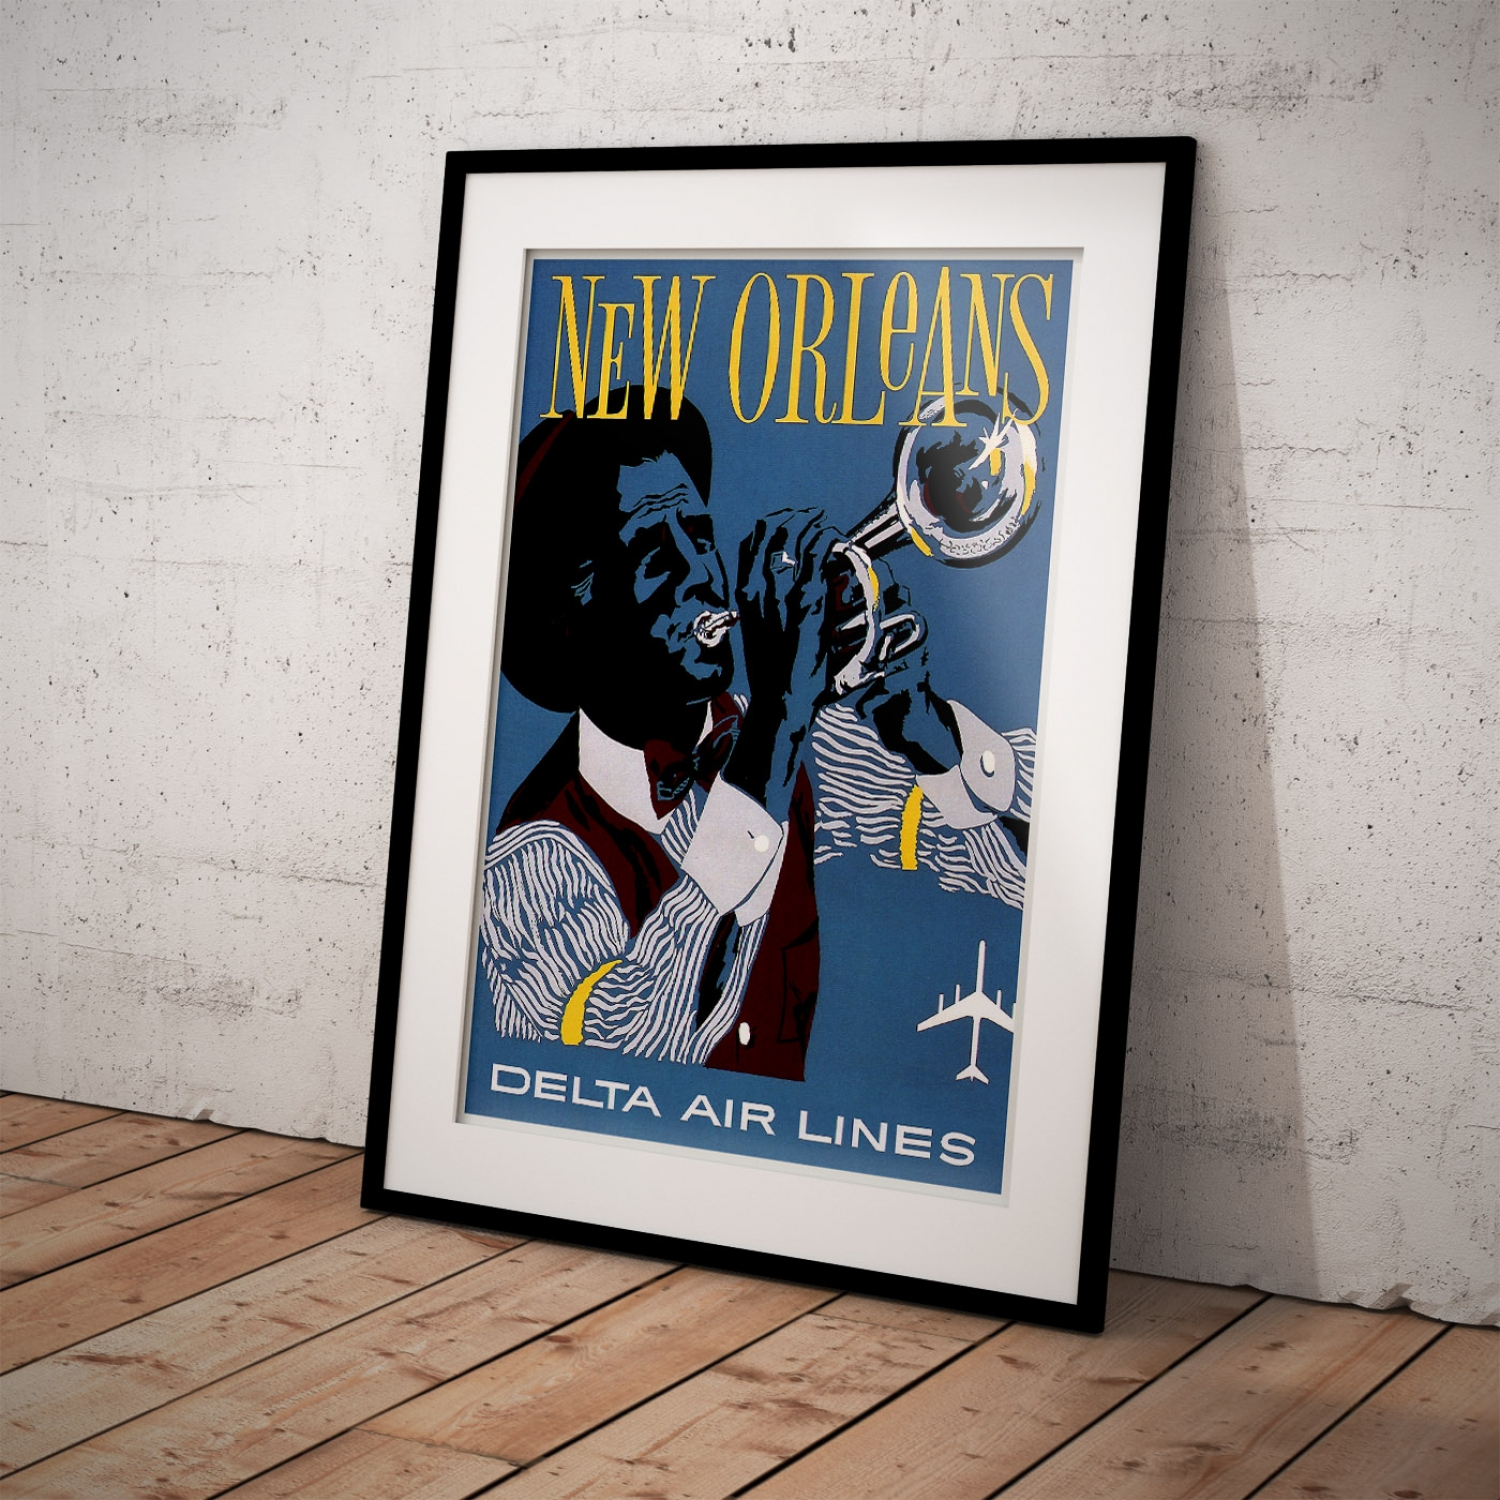 VINTAGE NEW ORLEANS DELTA AIR LINES AMERICA TRAVEL A2 POSTER PRINT